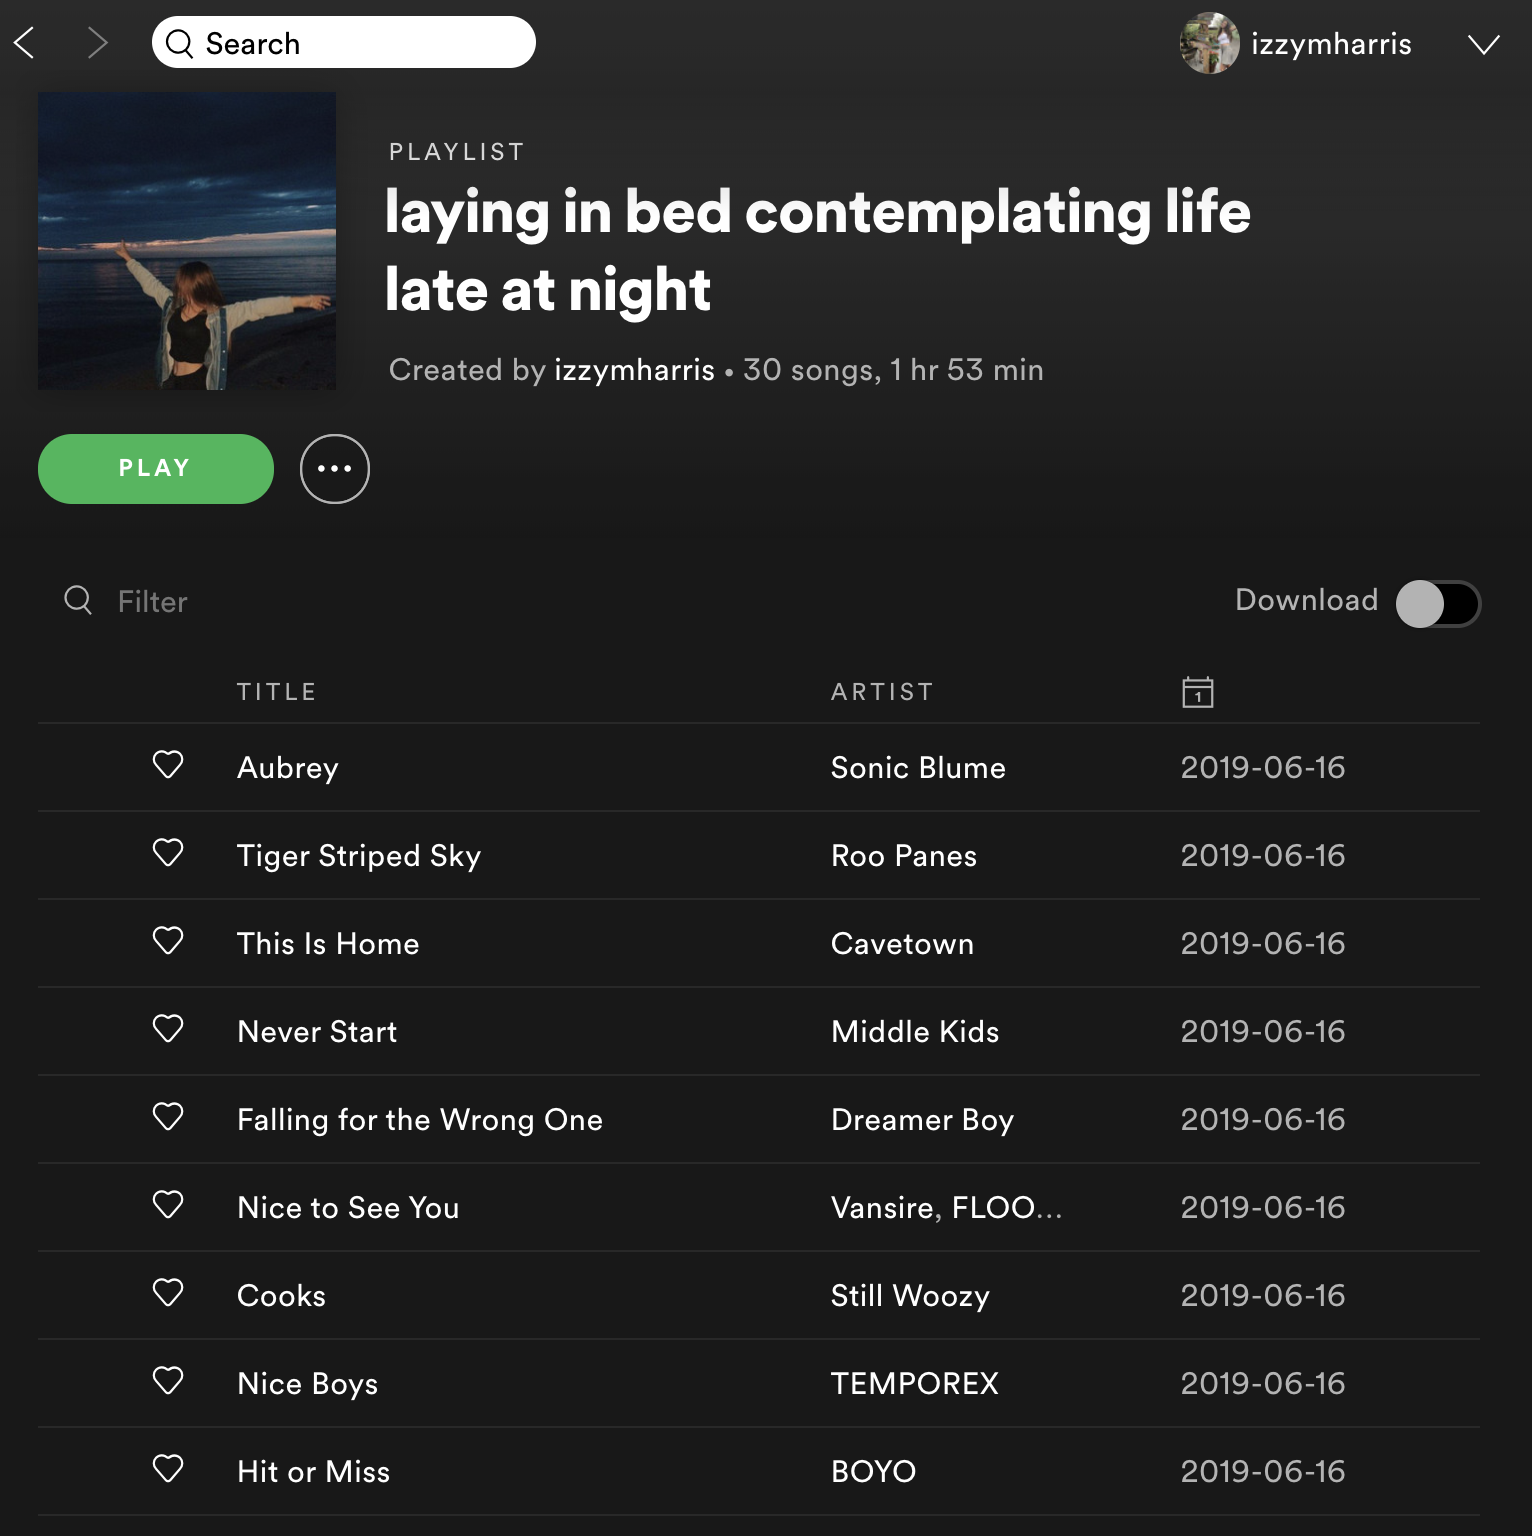 Spotify Playlist In Your Feelings Laying In Bed Contemplating Life Late At Night Vibe Song Song Playlist Playlist